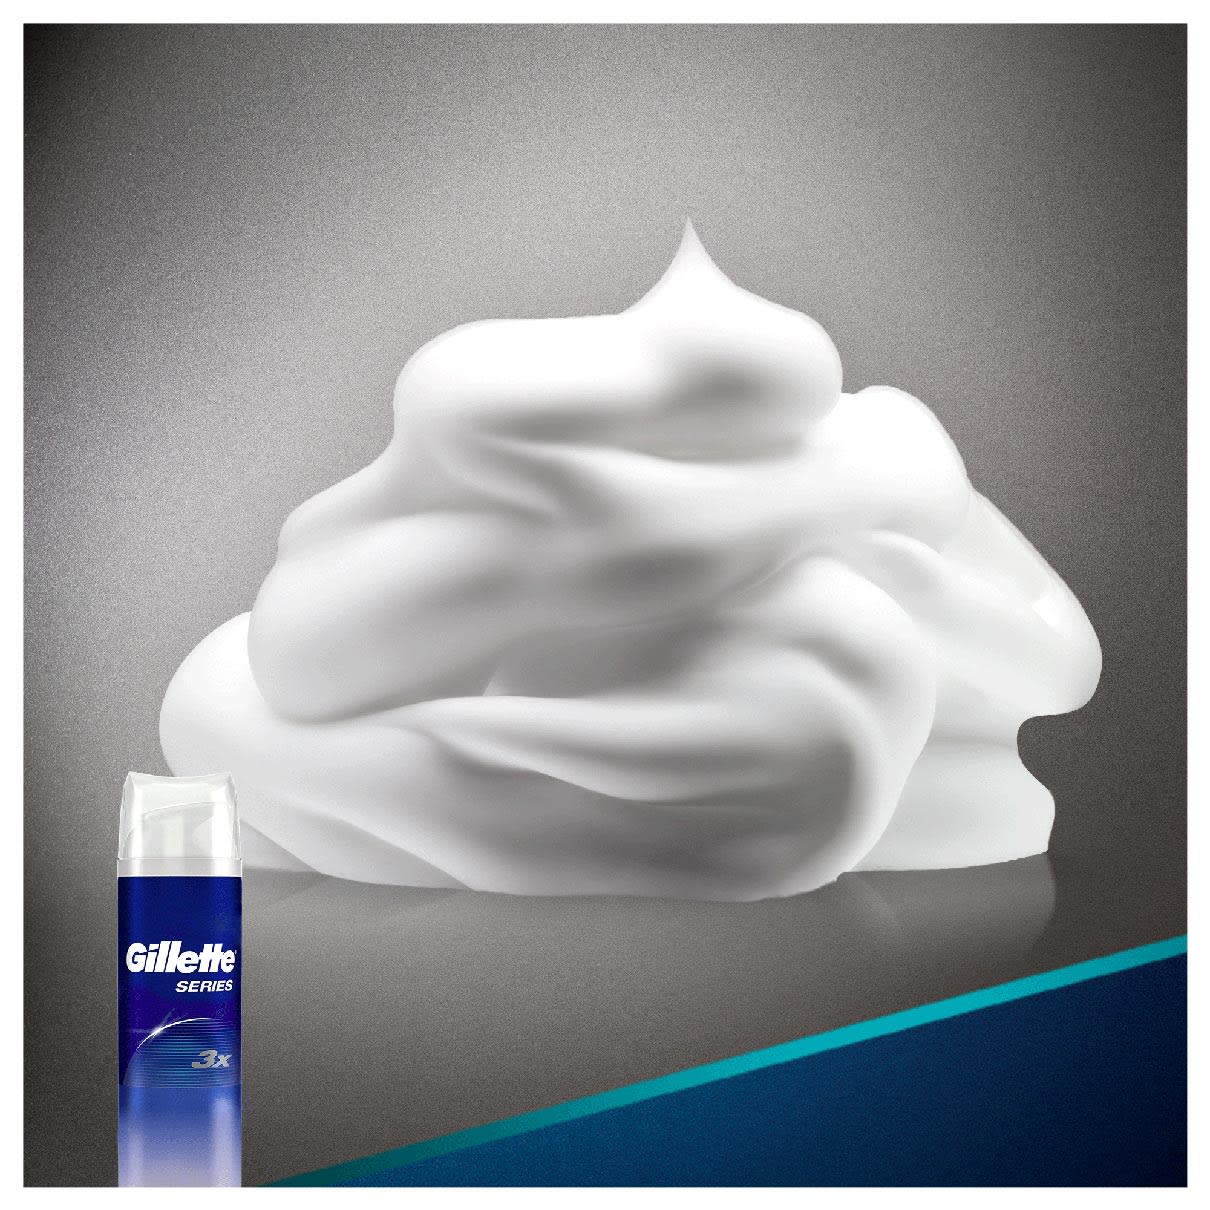 Series Sensitive Skin Shave Foam